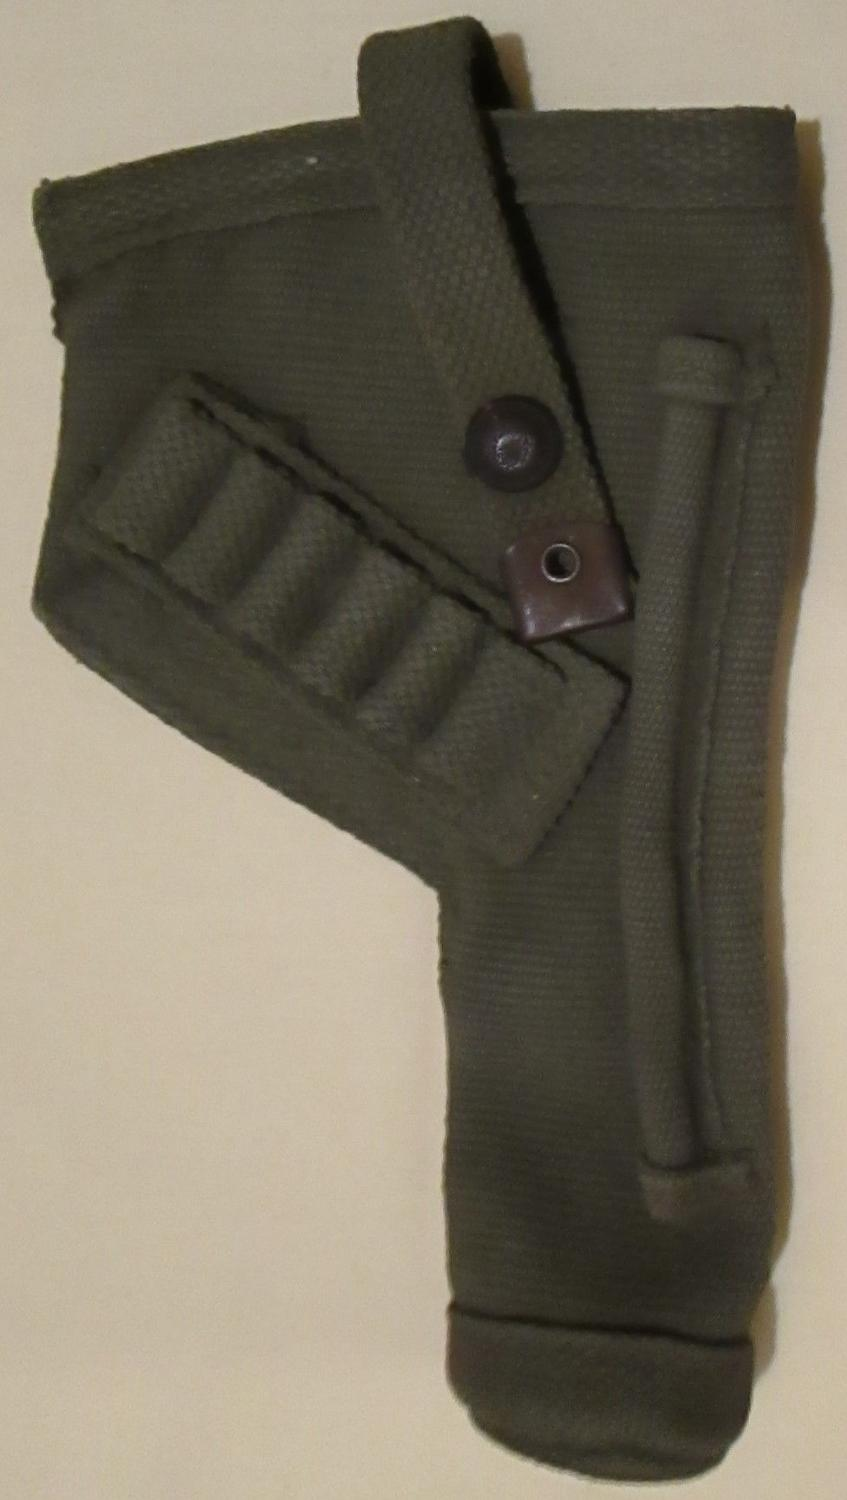 A BLANCOED WWII TANKS HOLSTER ( ATTRIBUTED )